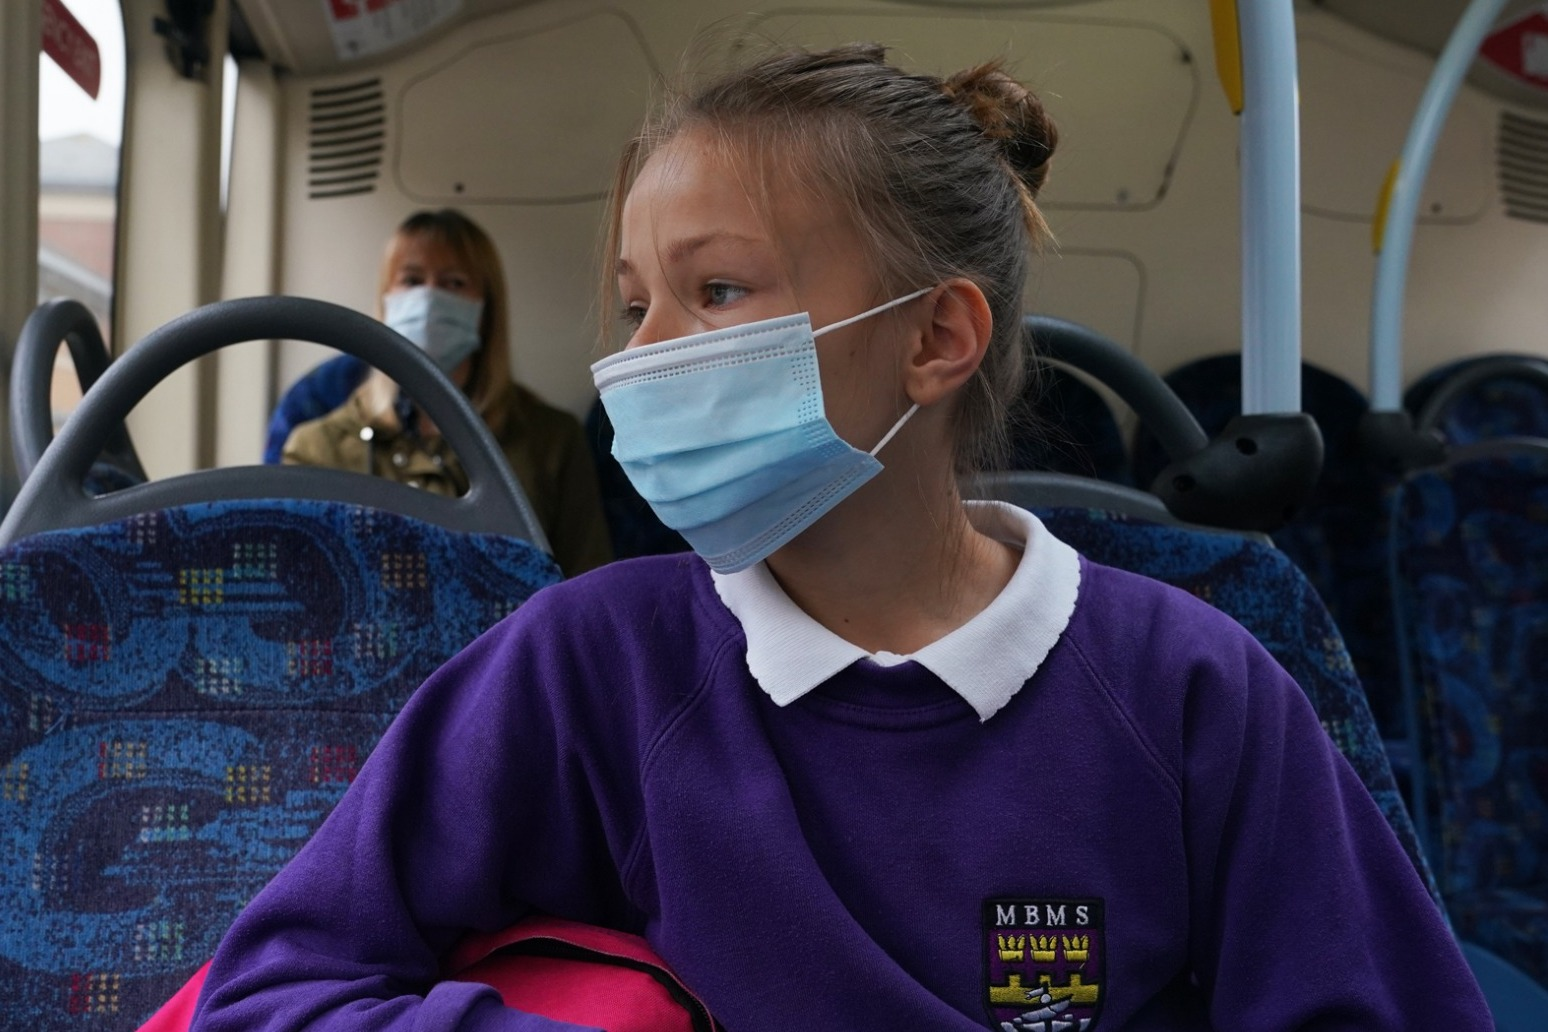 What are the rules on face coverings in UK schools?